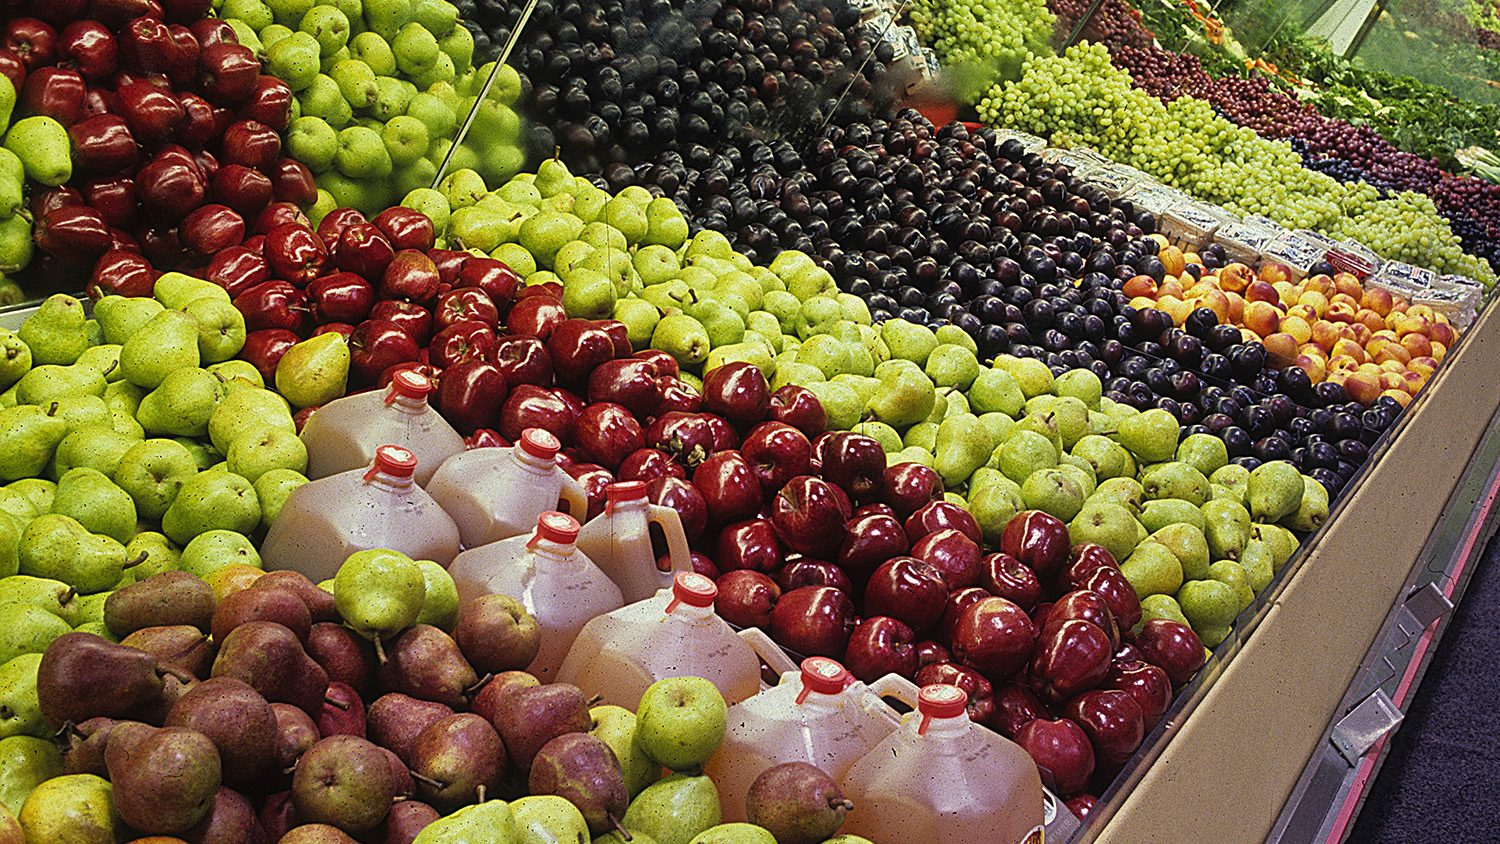 Grocery store produce section with appleas, cider, plums and more.